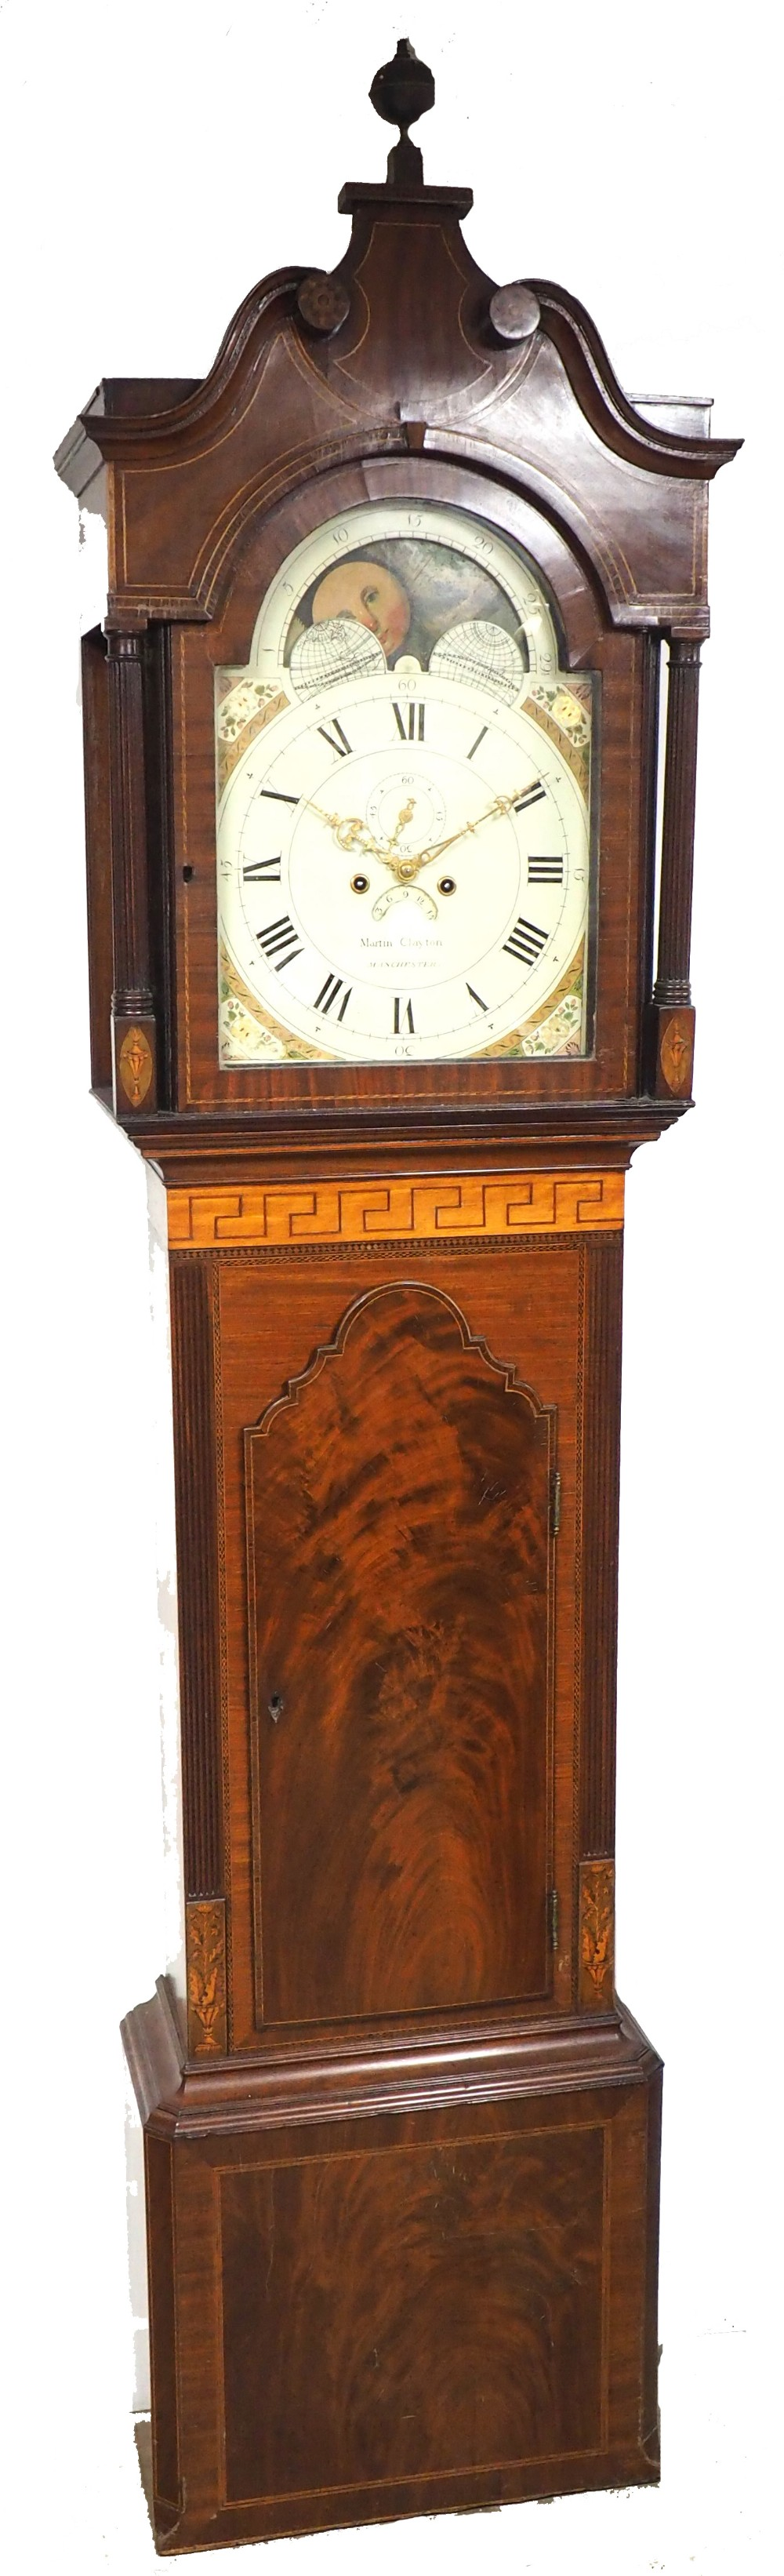 19thc english longcase clock in mahogany painted moon roller dial 8day signed martin clayton